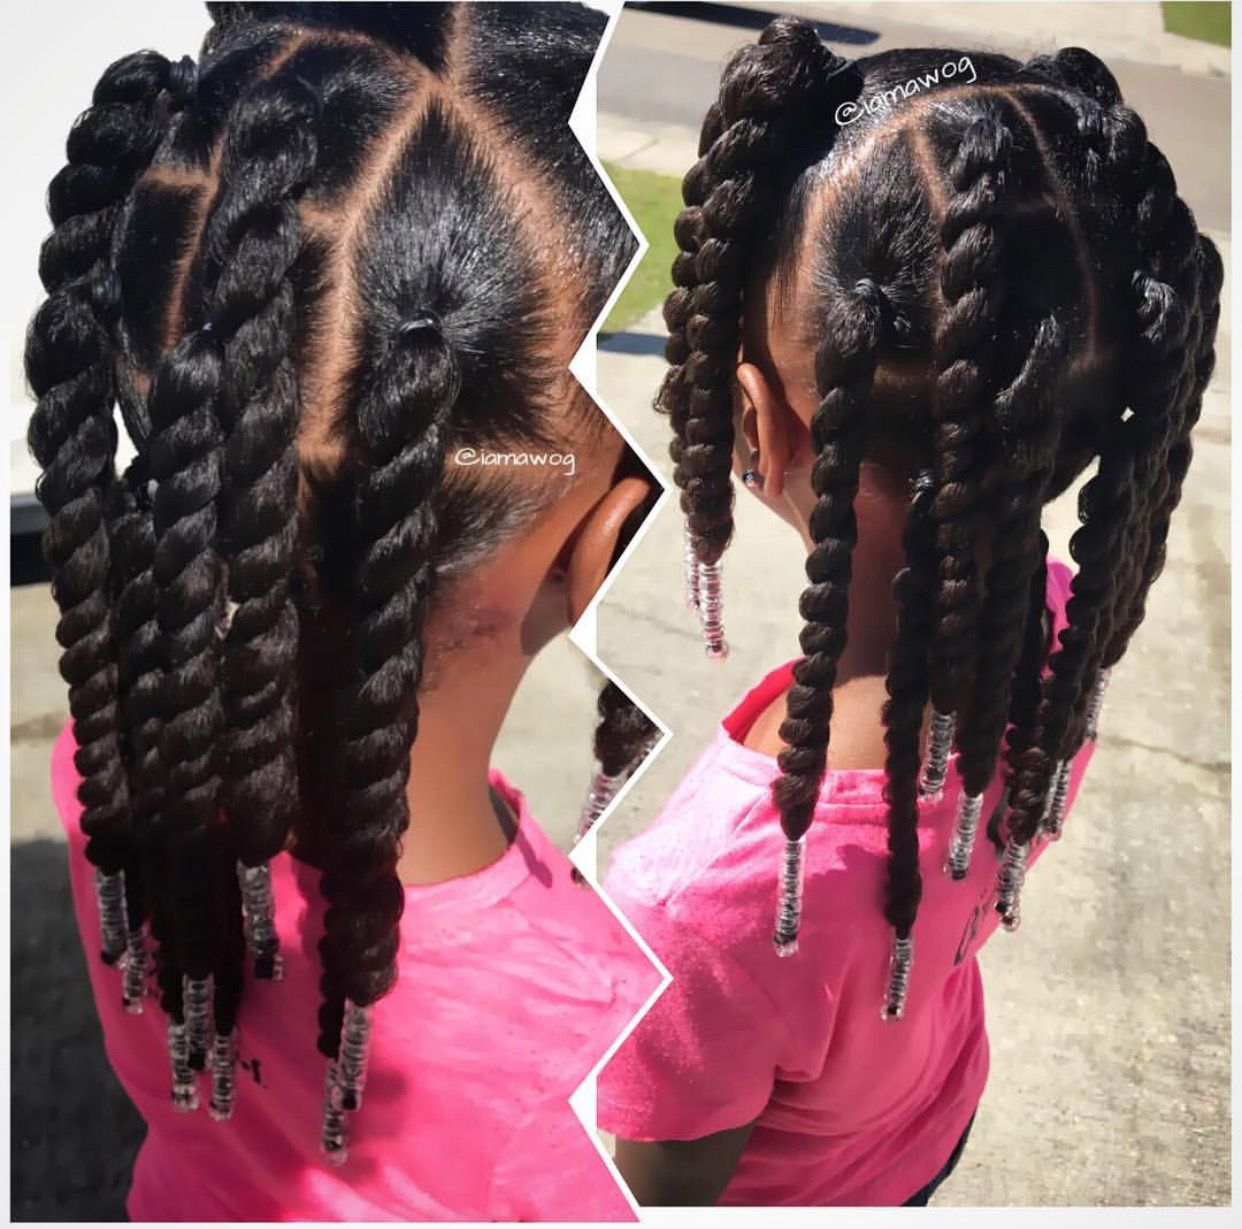 Cute hairstyles for kids hairstyleforblackwomen.net 1